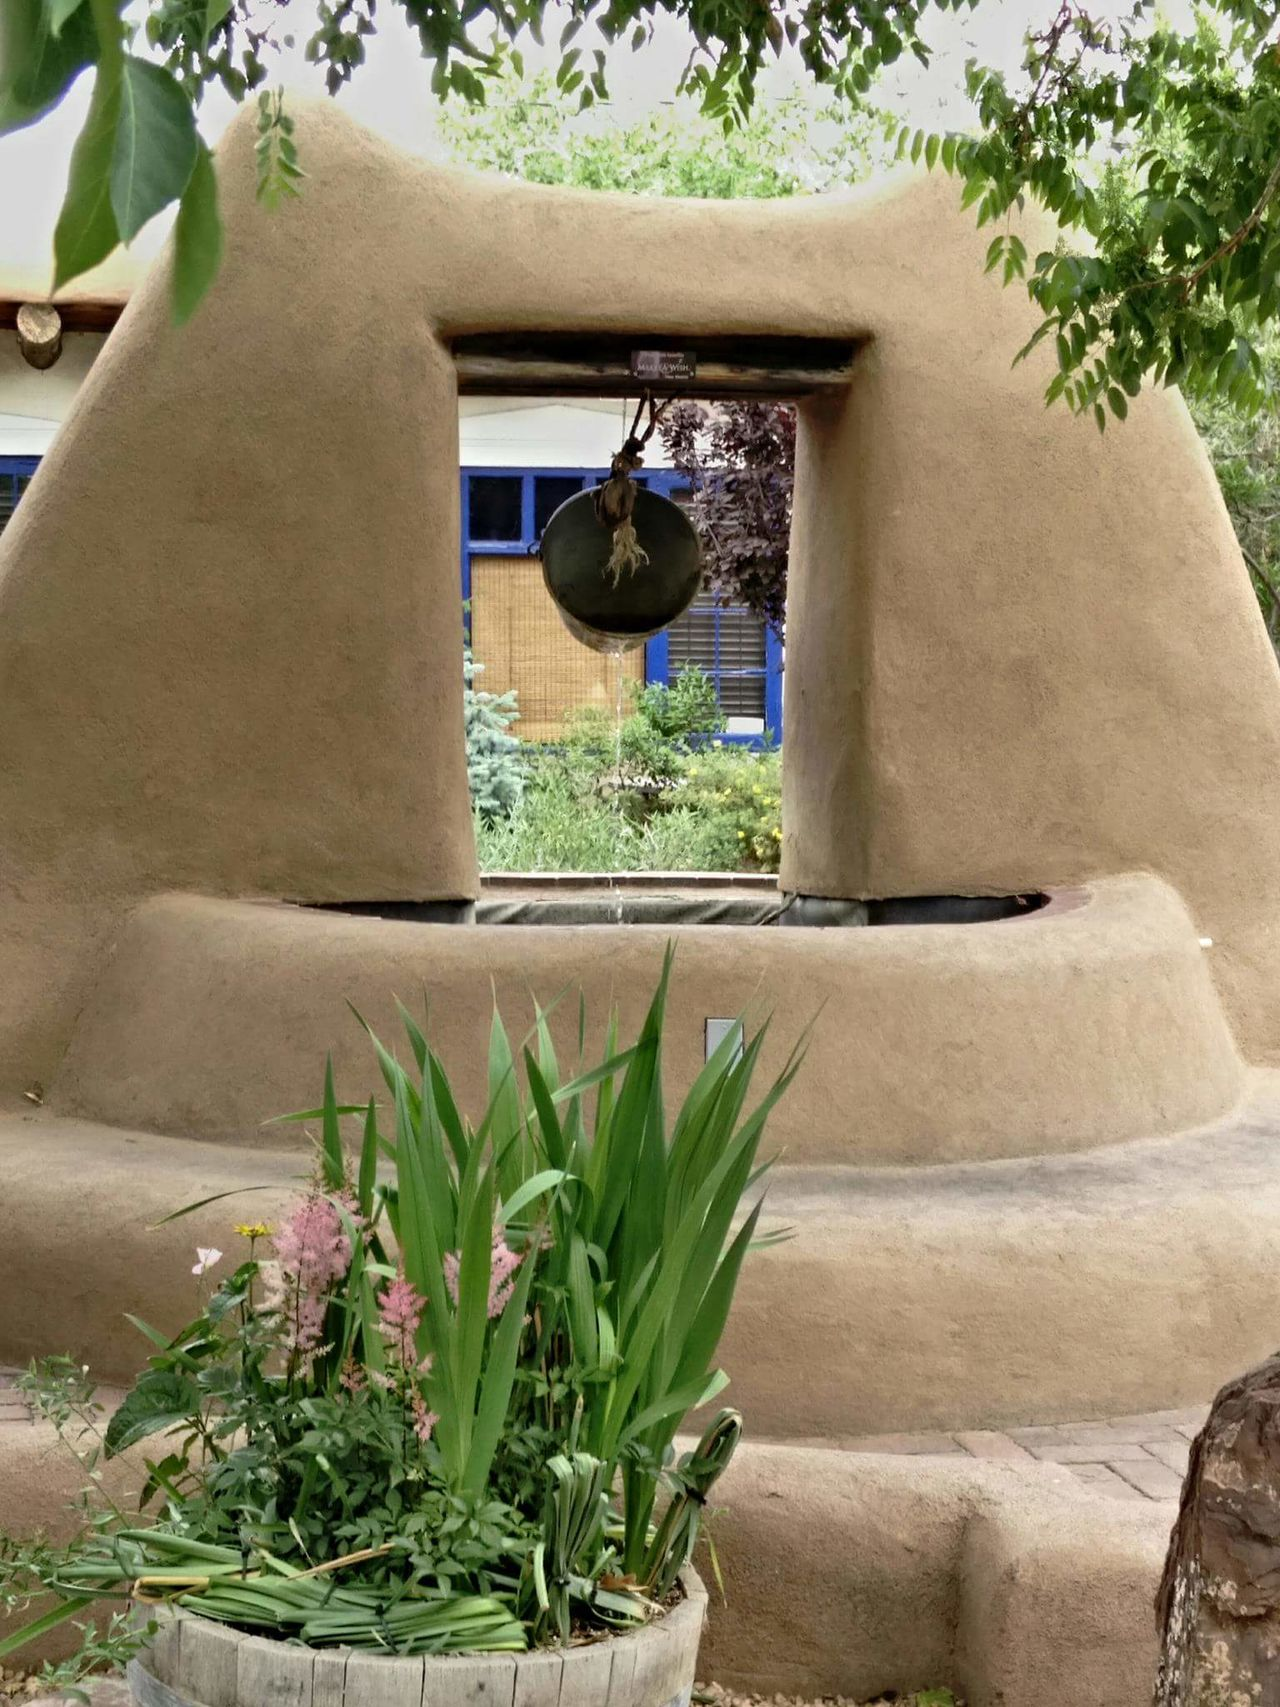 Adobe Water Well Architecture Built Structure Building Exterior Window Plant House Residential Structure Growth Day Outdoors No People Stone Material Green Color Albuquerque New Mexico Old Town Plazuela Frontier Life Historic